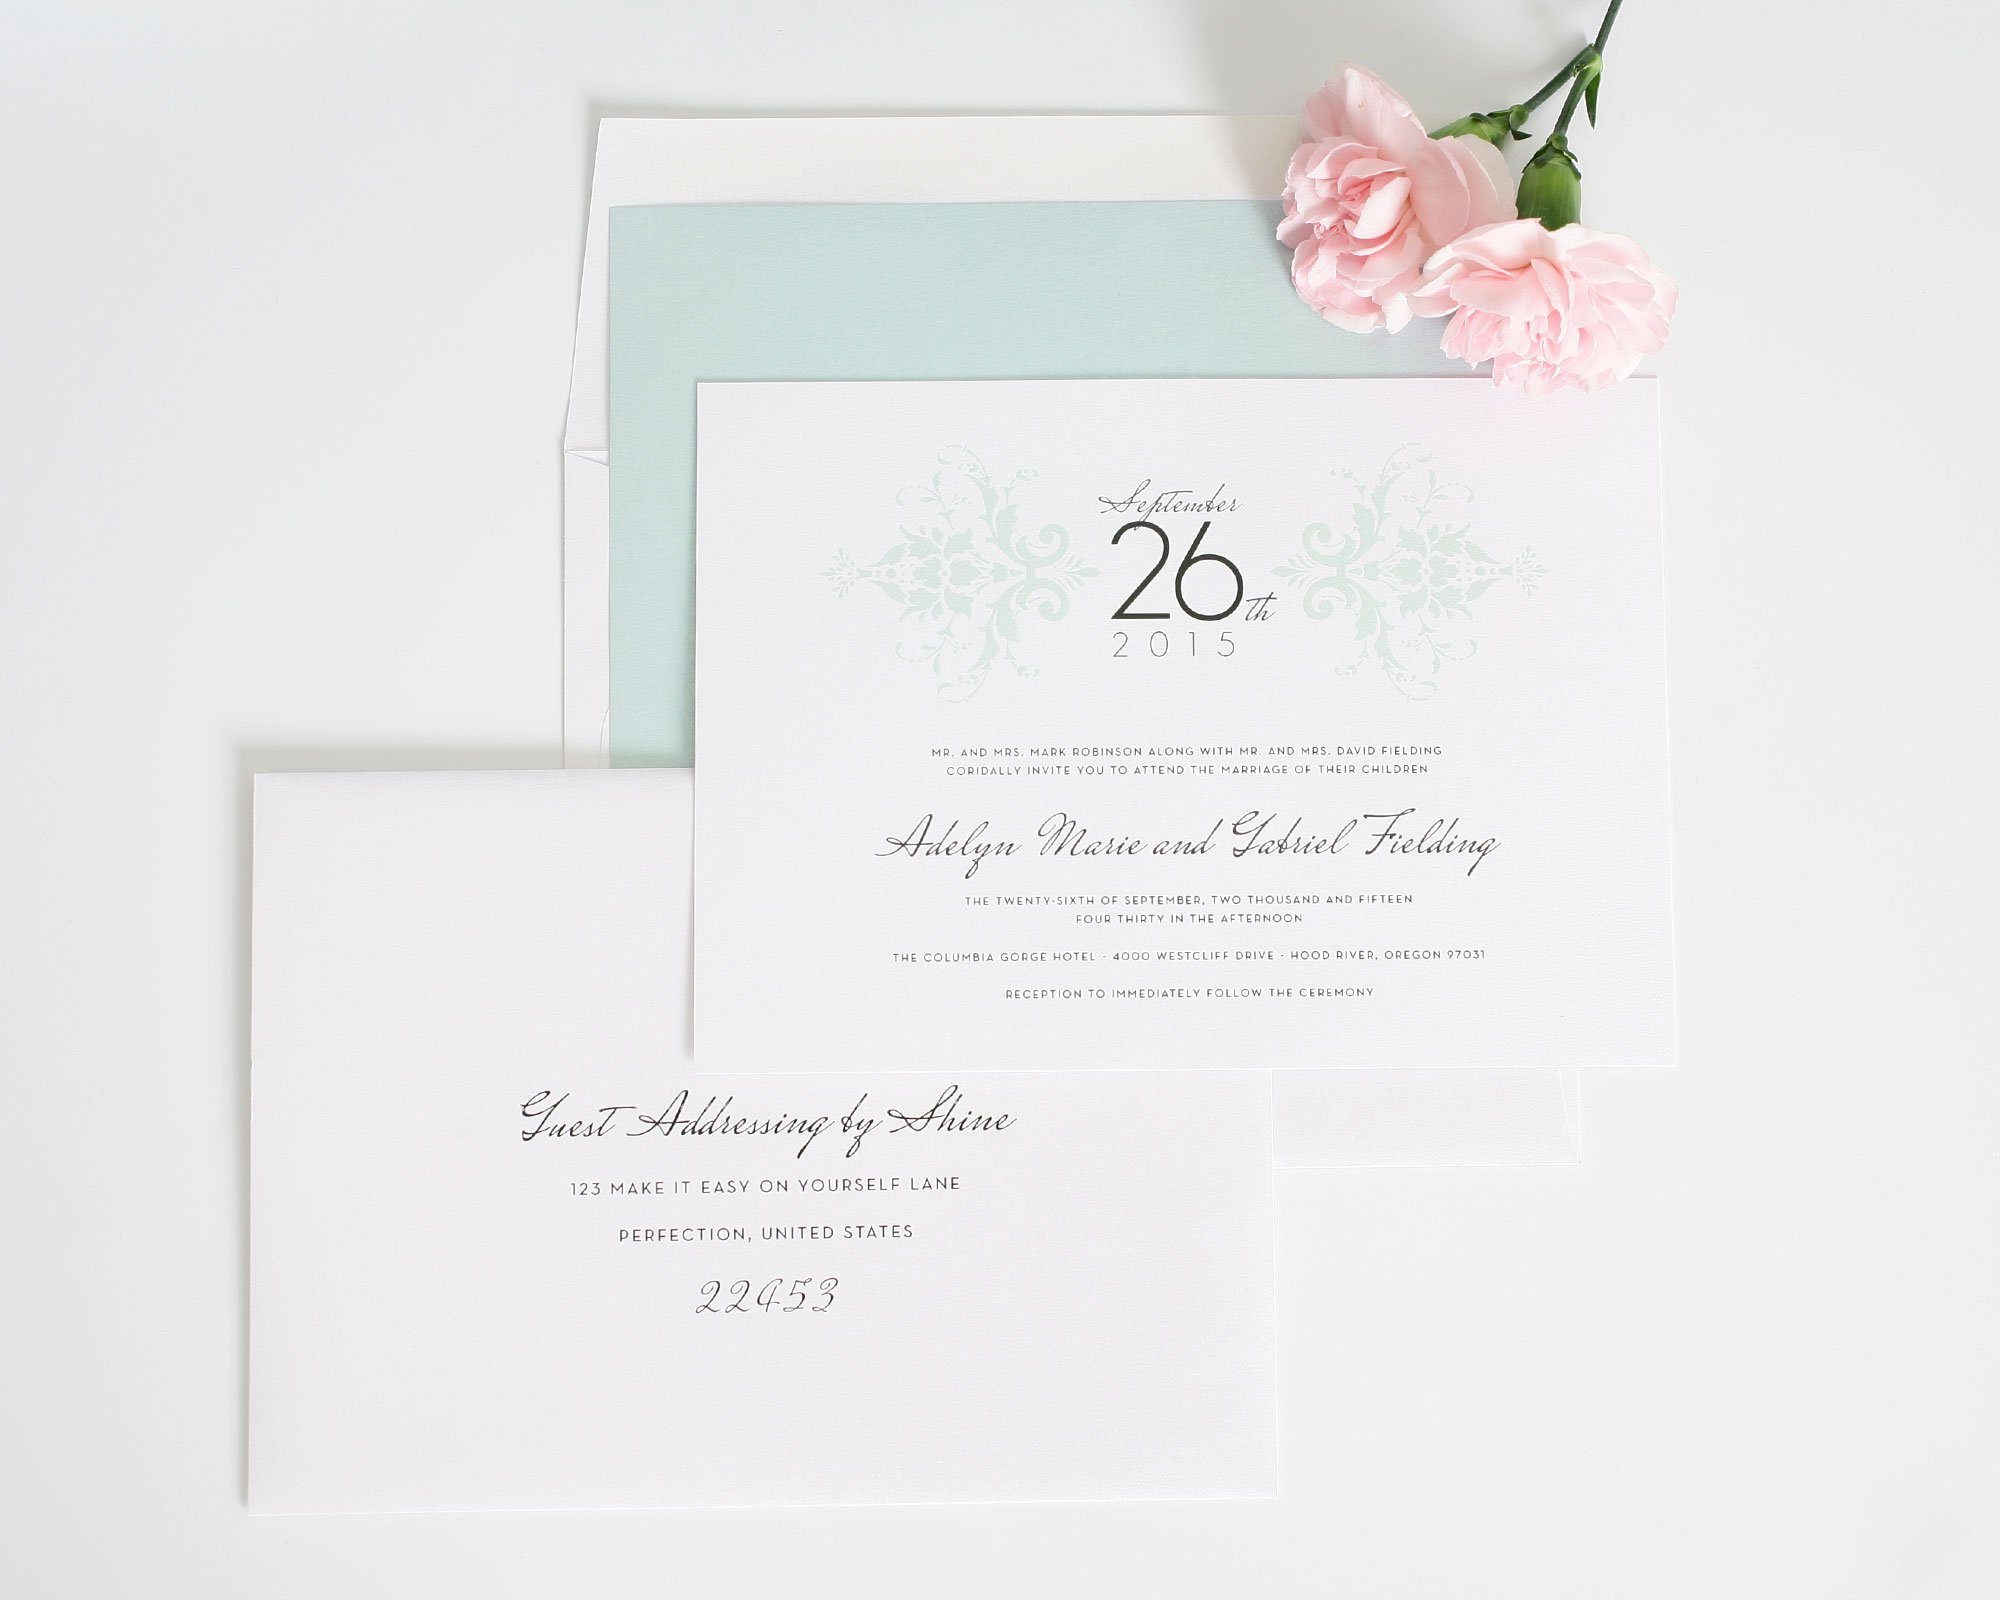 Elegant Wedding Invitations in Mint Damask